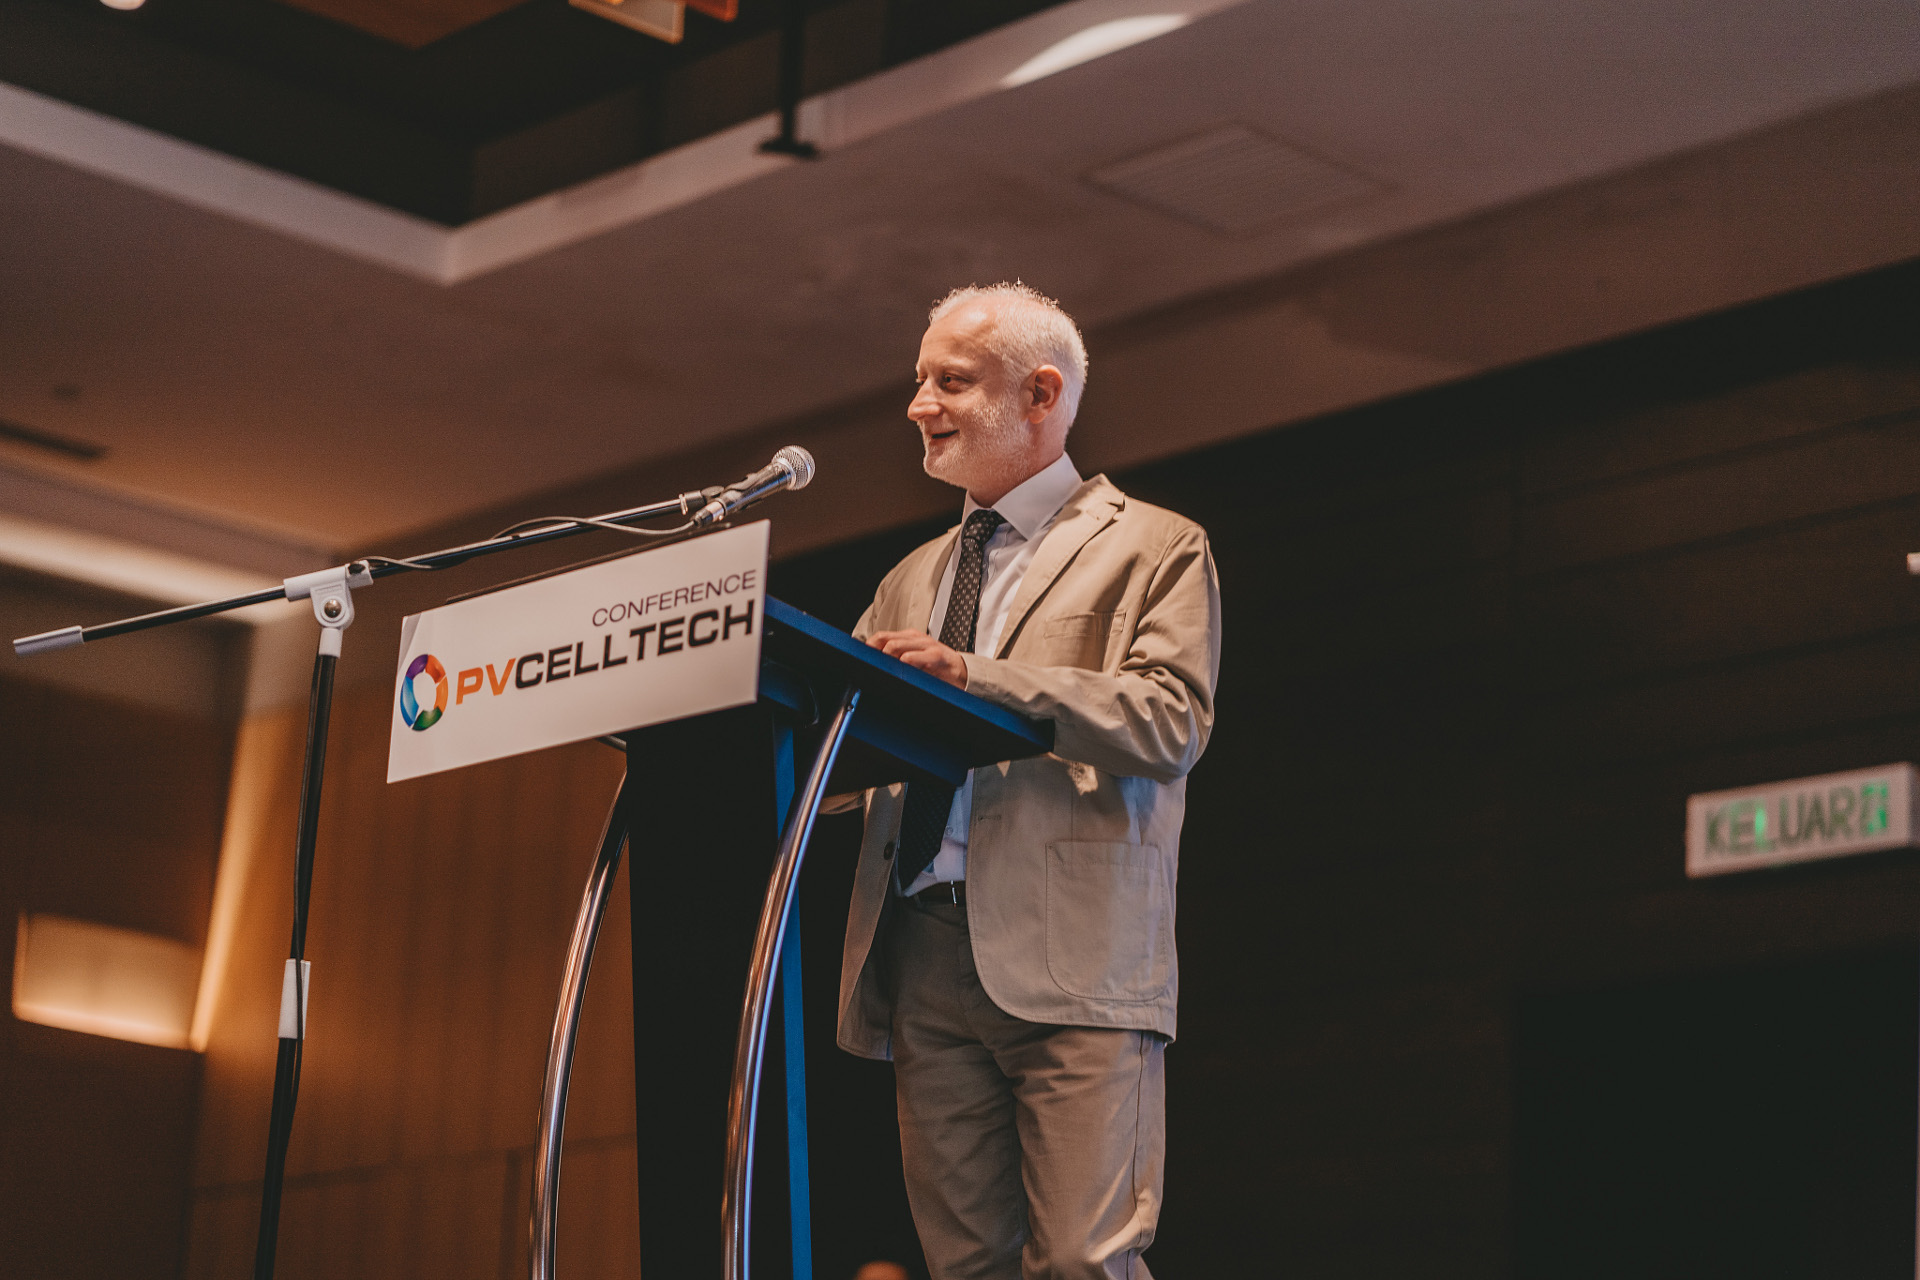 PV-Tech's Dr. Finlay Colville will deliver a one-hour seminar at the forthcoming PV IndiaTech 2019 conference in Delhi, addressing the key issue of how India can compete with global competition as it reviews investment decisions on how to become a global manufacturing powerhouse.